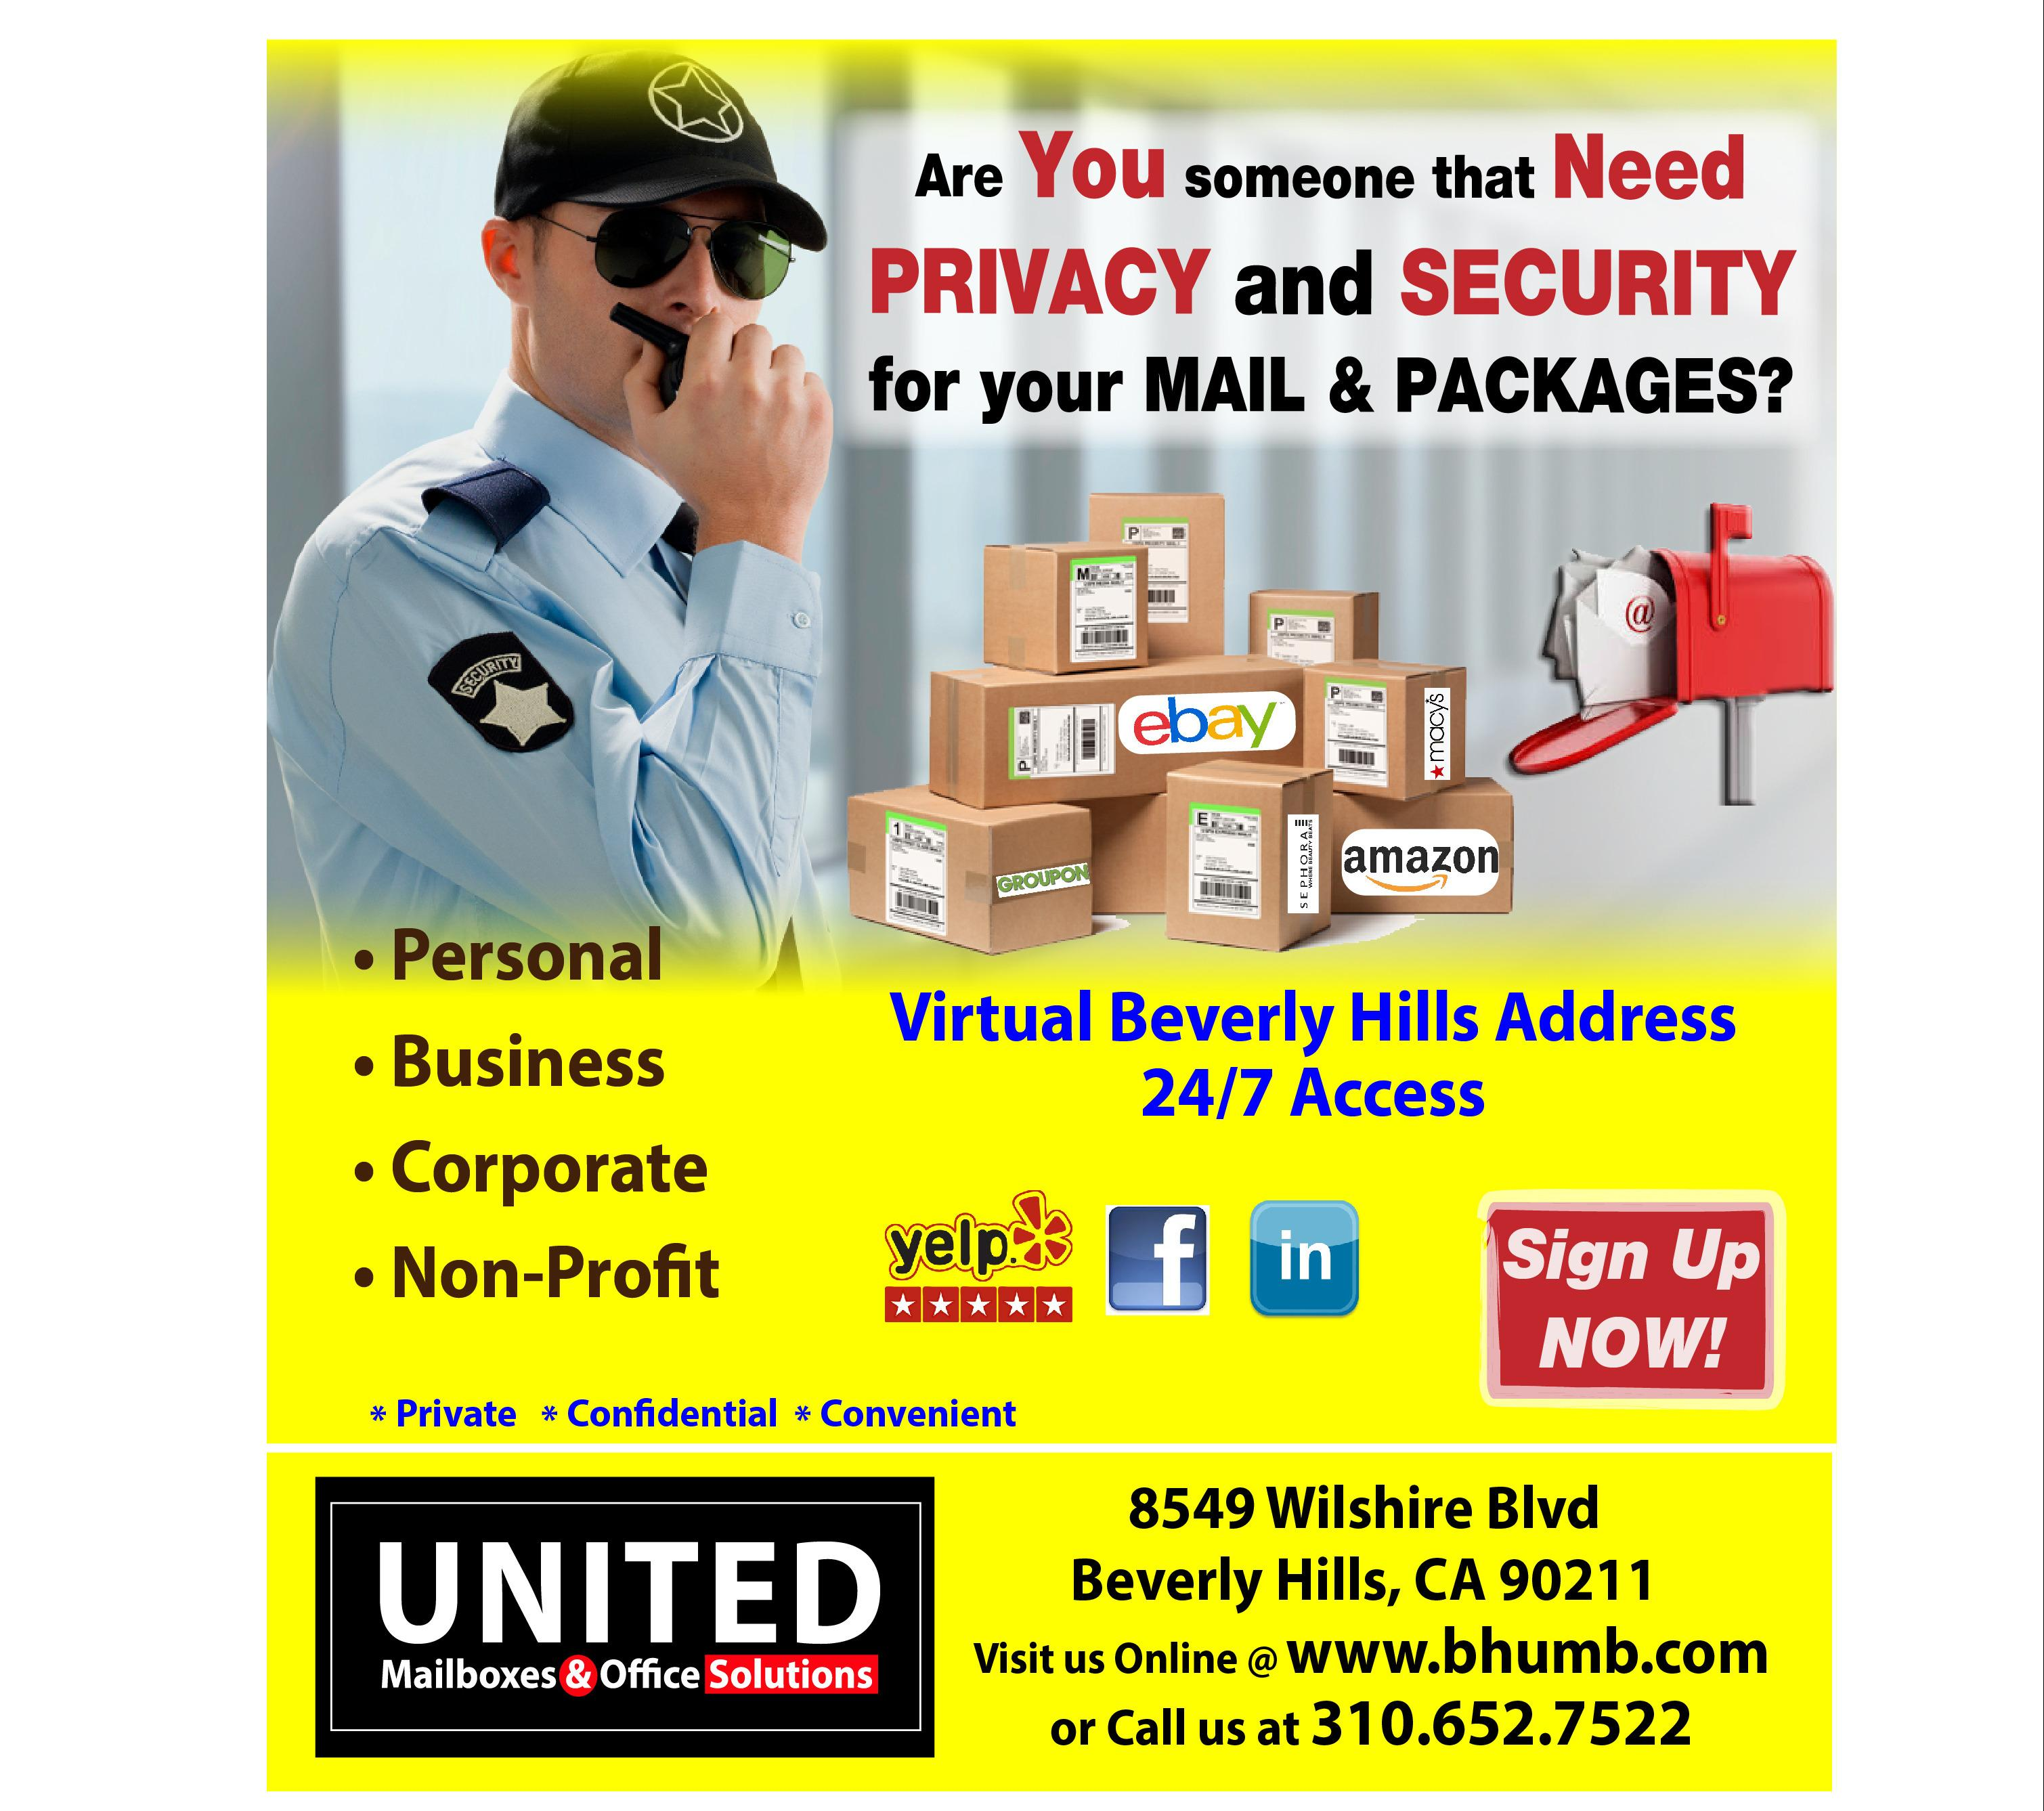 UNITED Mailboxes & Office Solutions image 4